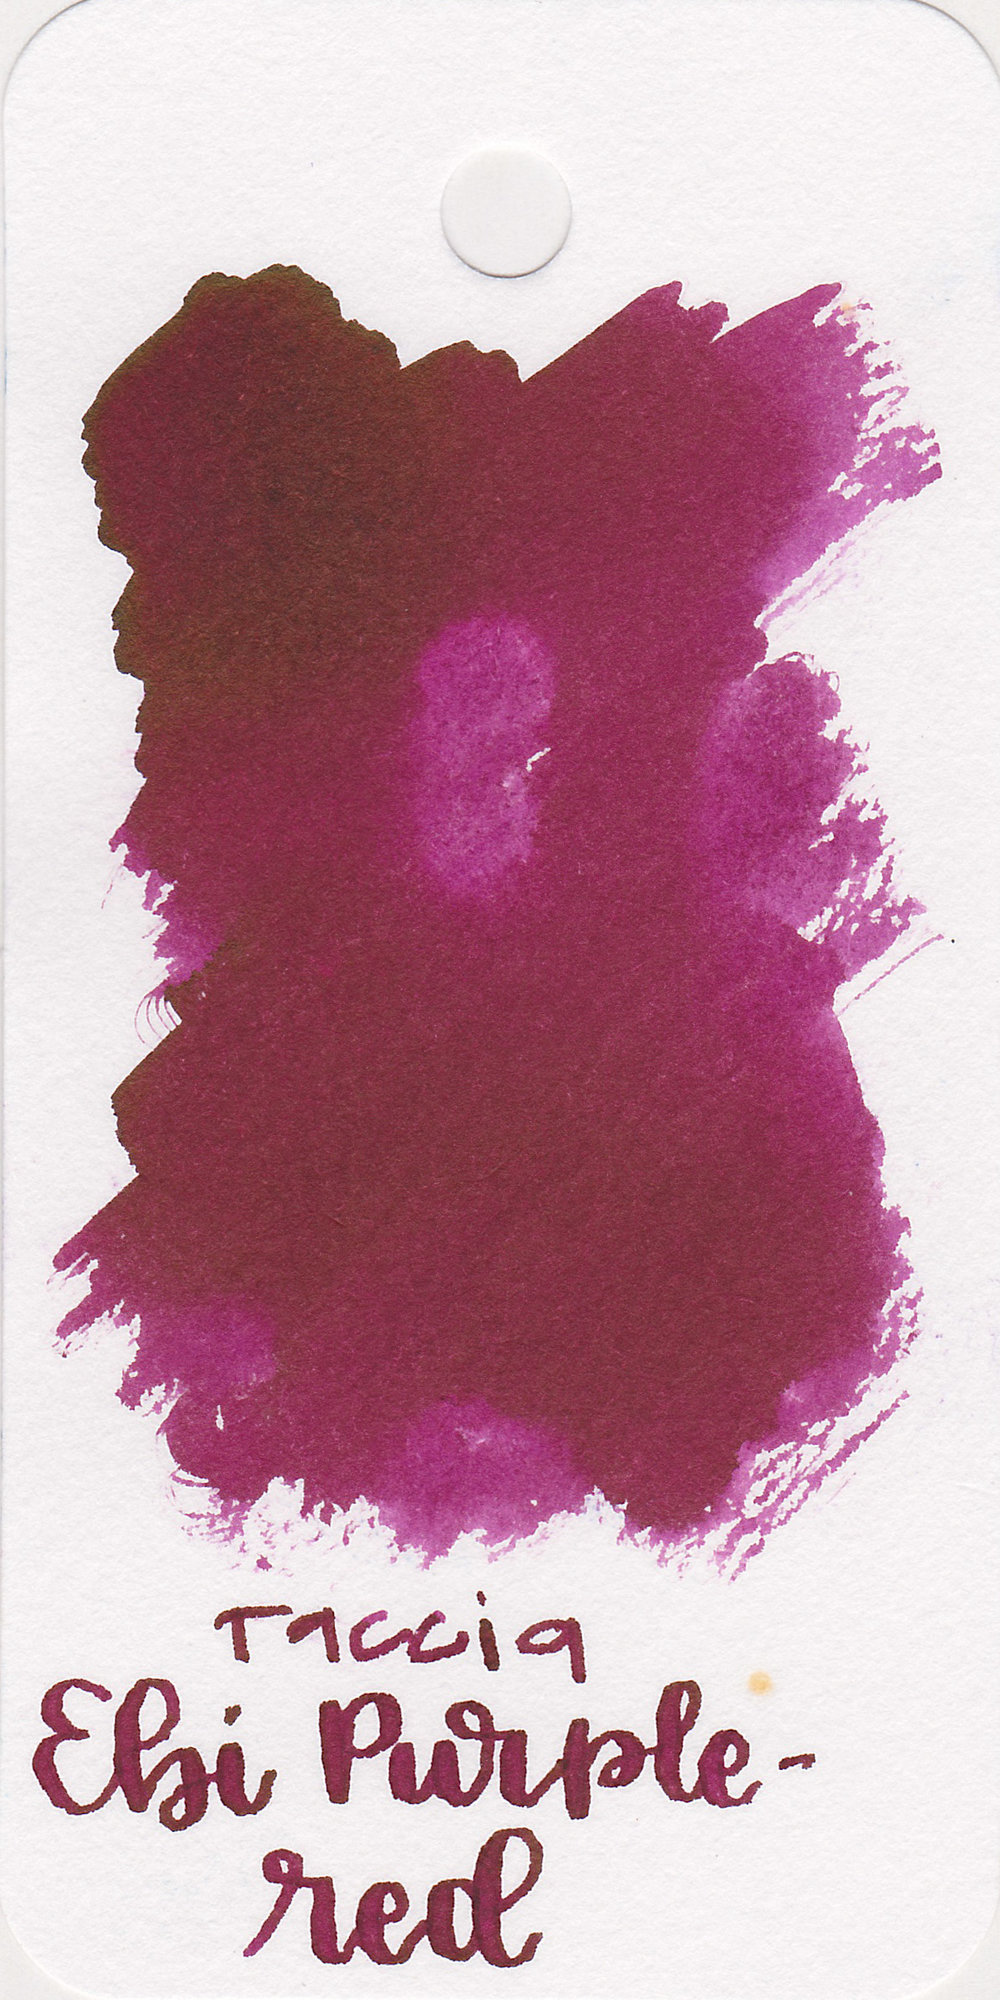 The color: - Ebi Purple-Red is a maroonish-purple.